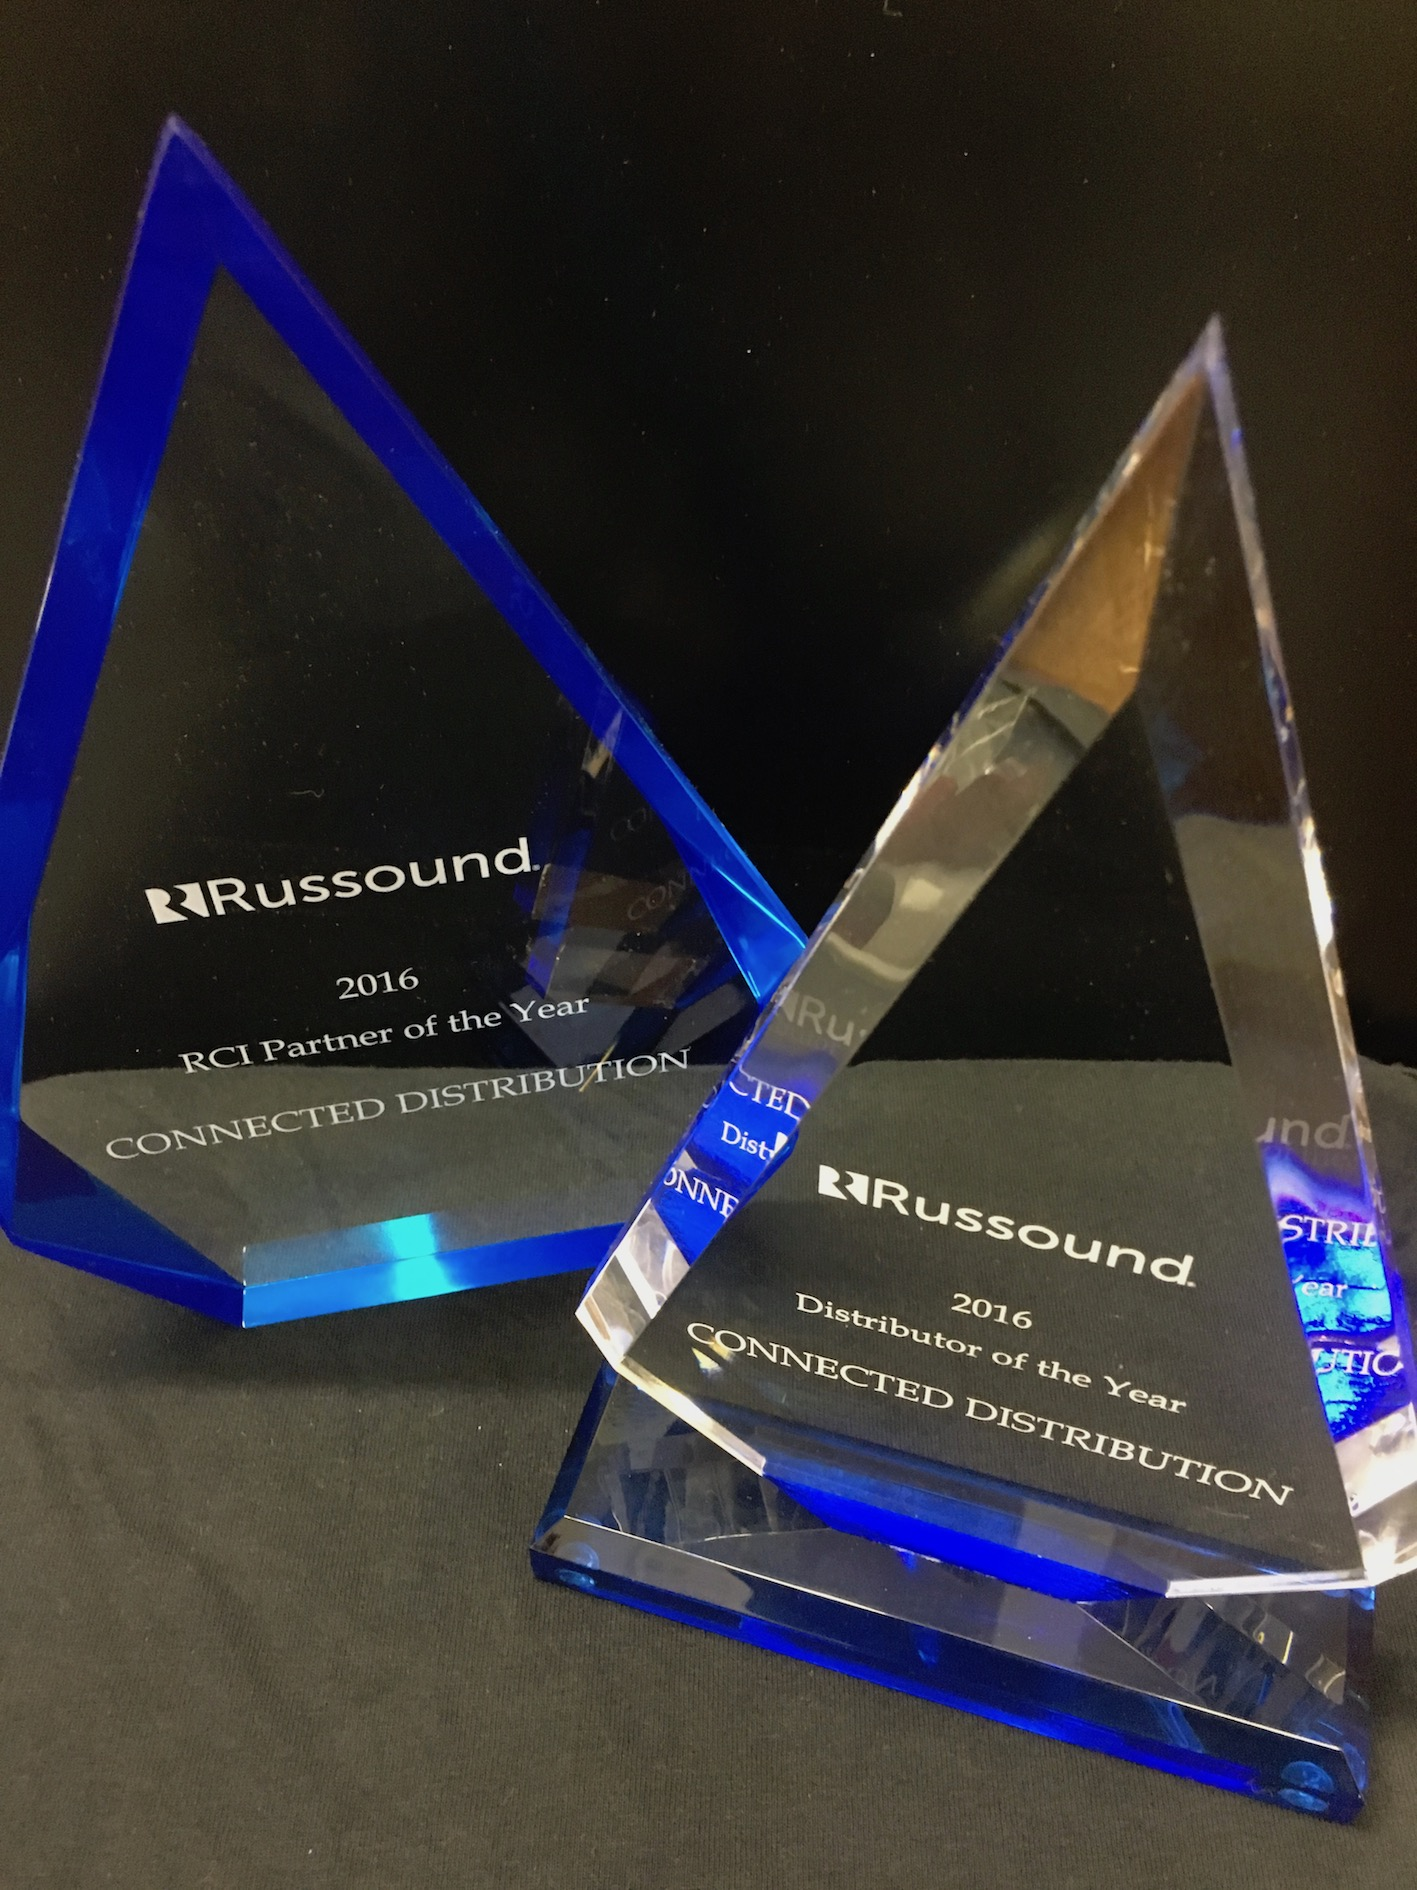 Russound awards